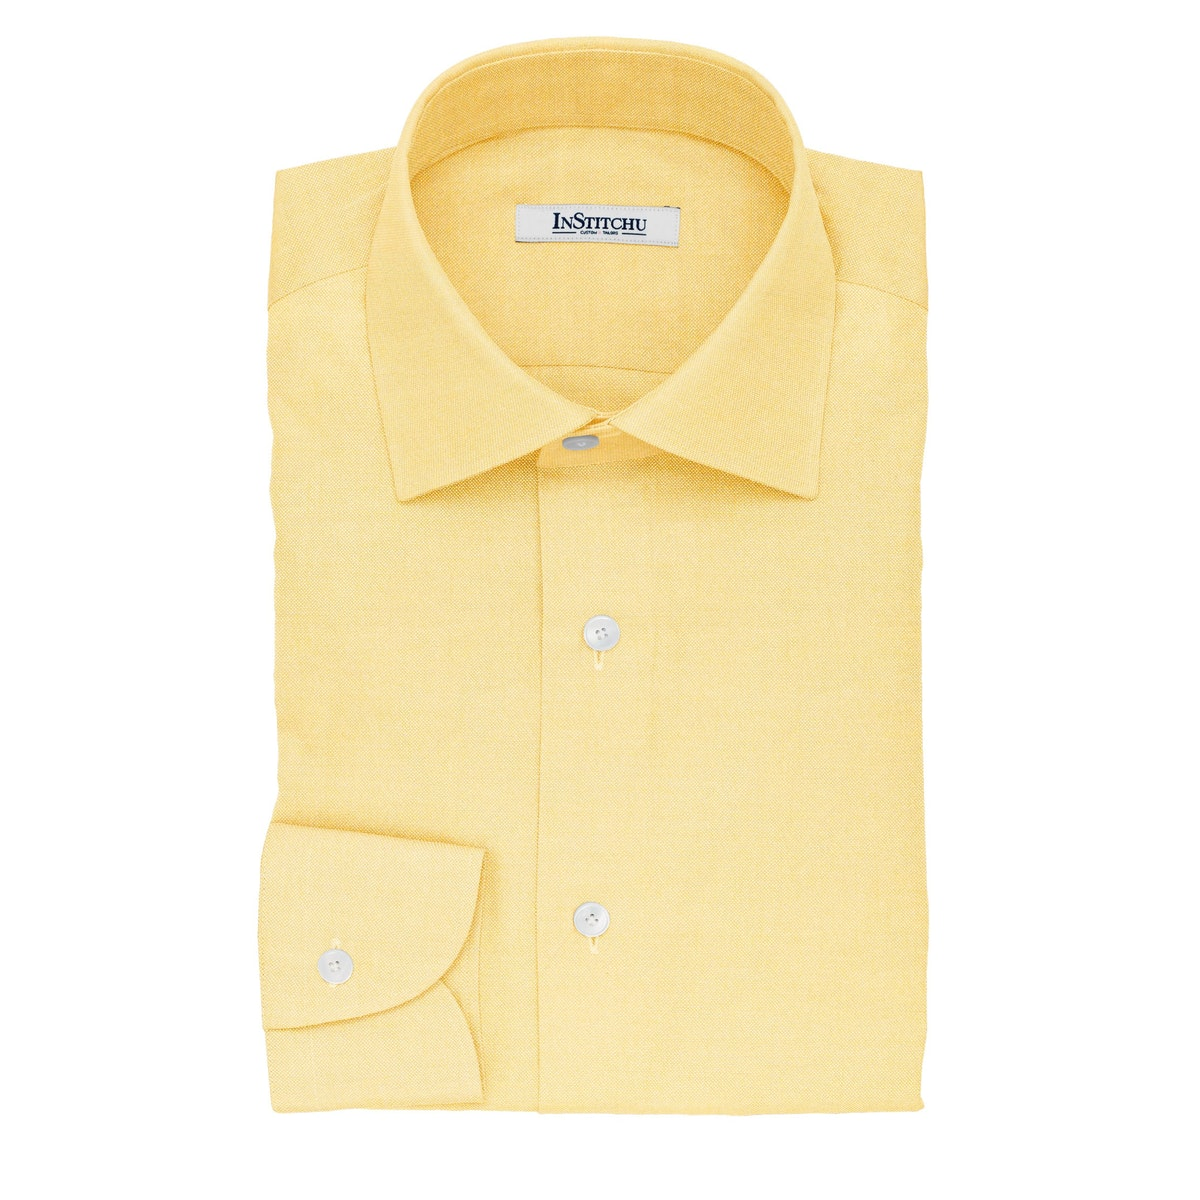 InStitchu Collection The Clare Yellow Pinpoint Cotton Oxford Shirt